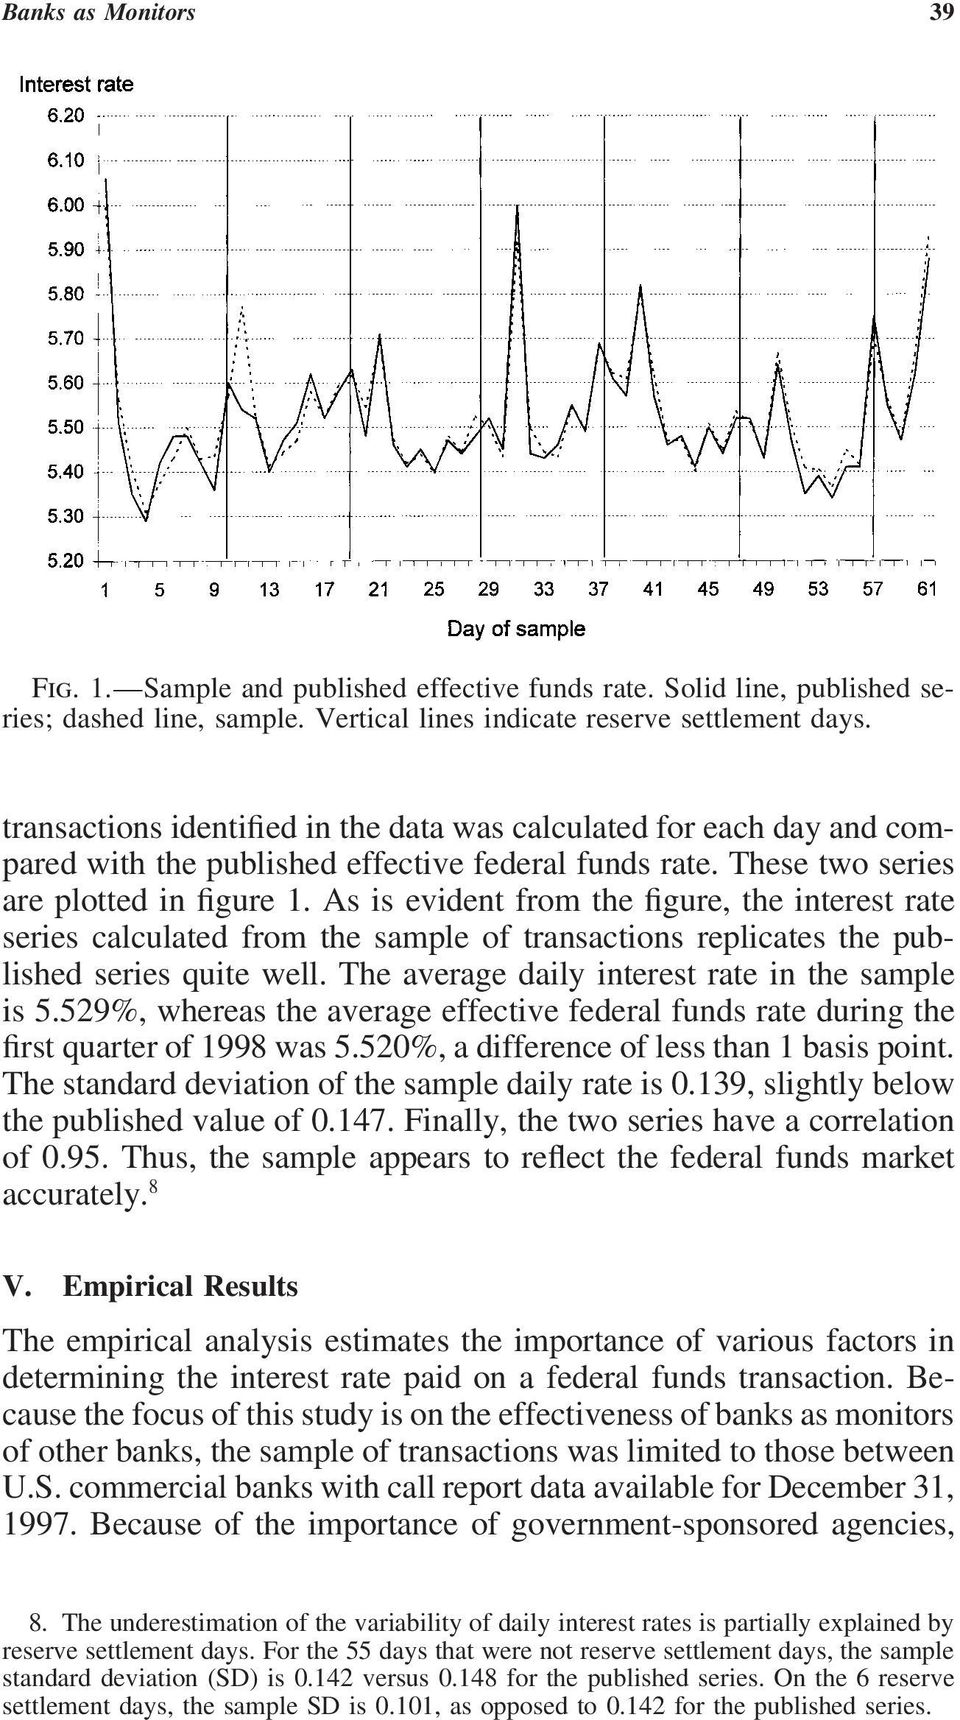 As is evident from the figure, the interest rate series calculated from the sample of transactions replicates the published series quite well. The average daily interest rate in the sample is 5.